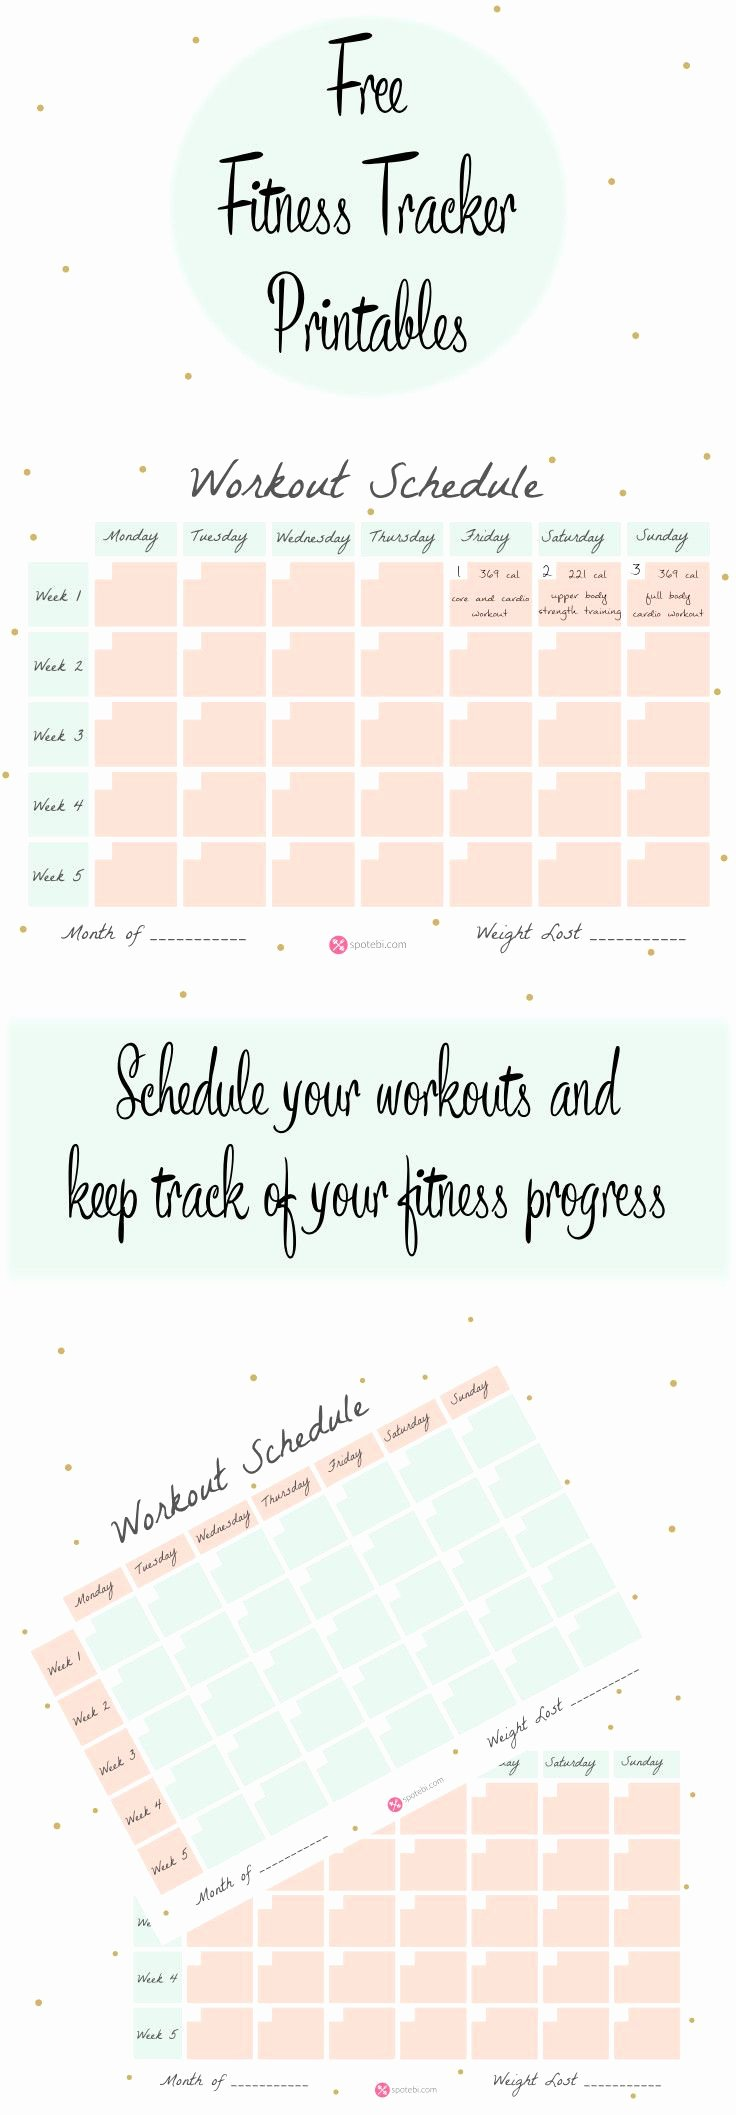 Work Out Schedule Templates Unique Workout Schedule Template